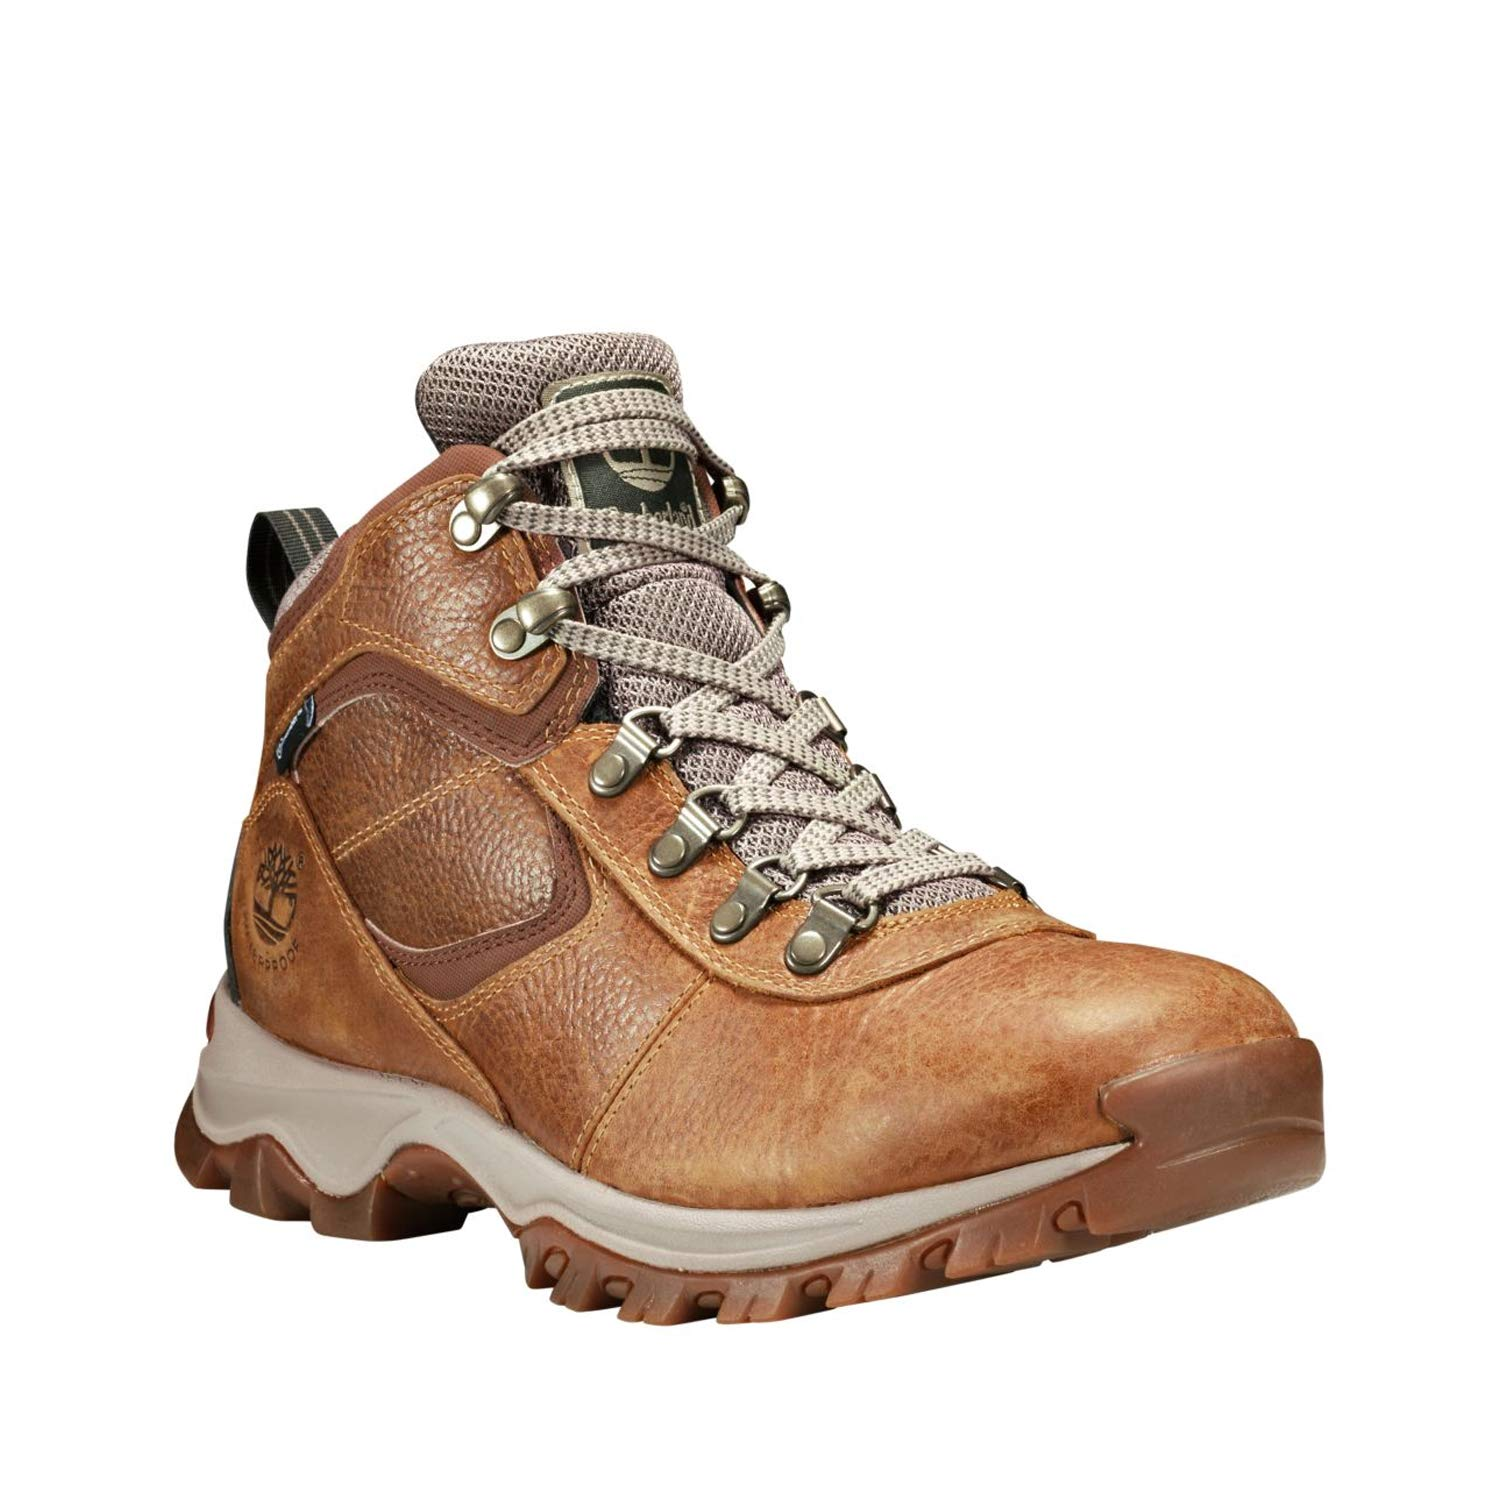 2dfce11a273 Timberland Mt. Maddsen Mid Waterproof Hiking Boot - Men's Light Brown Full  Grain, 8.0